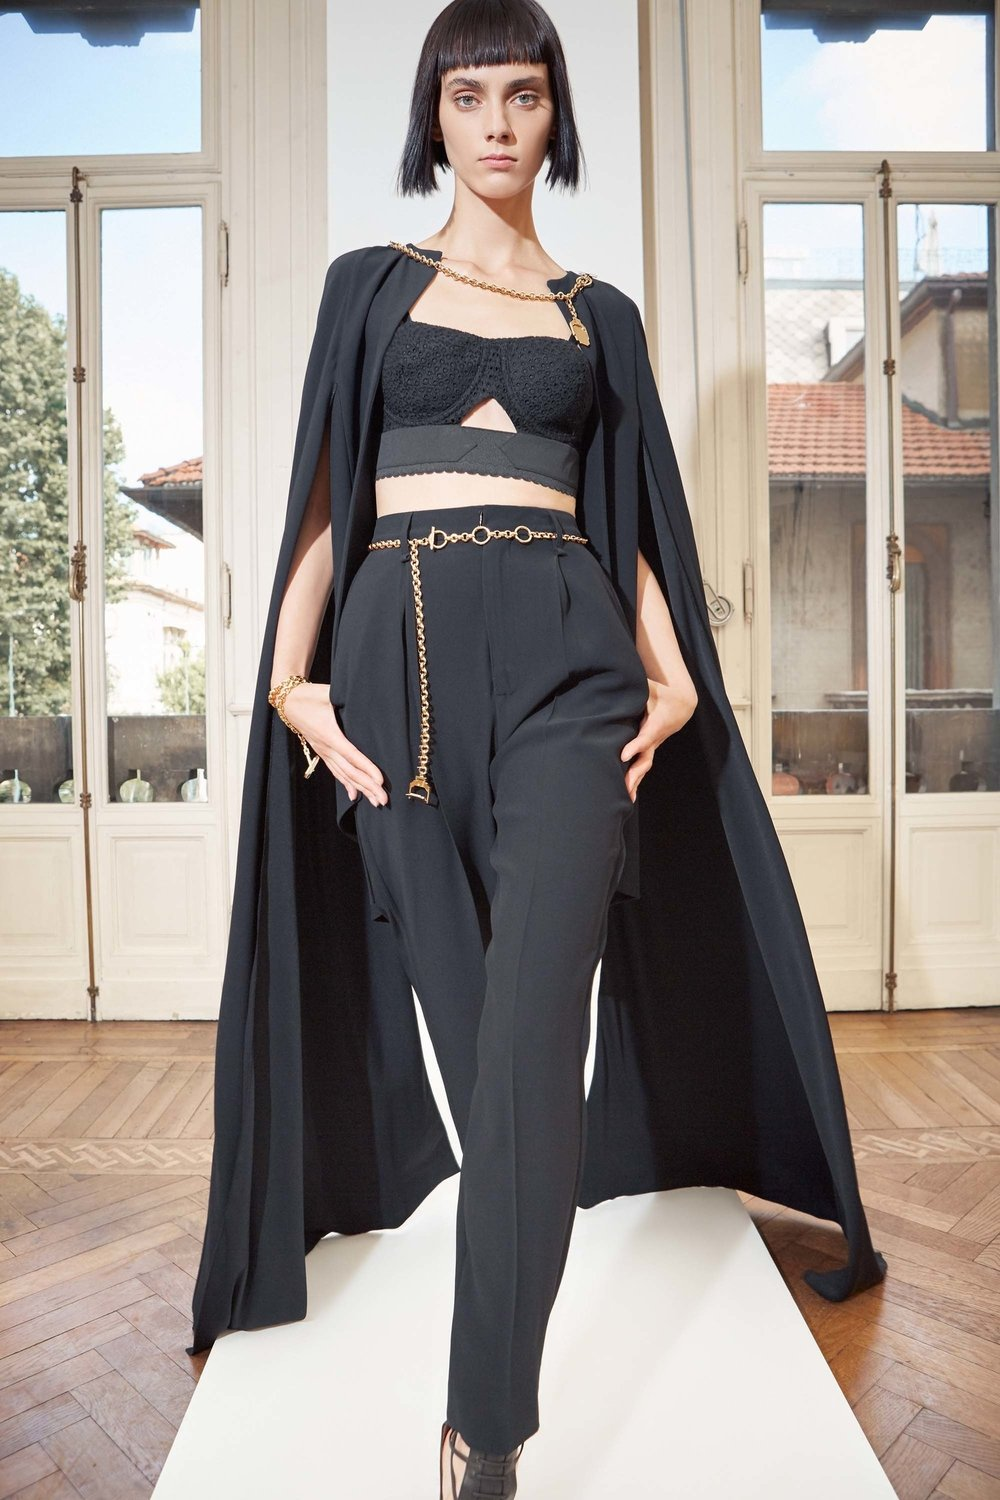 antonio_berardi_resort_17_35_jpg_3429_north_1382x_black.jpg